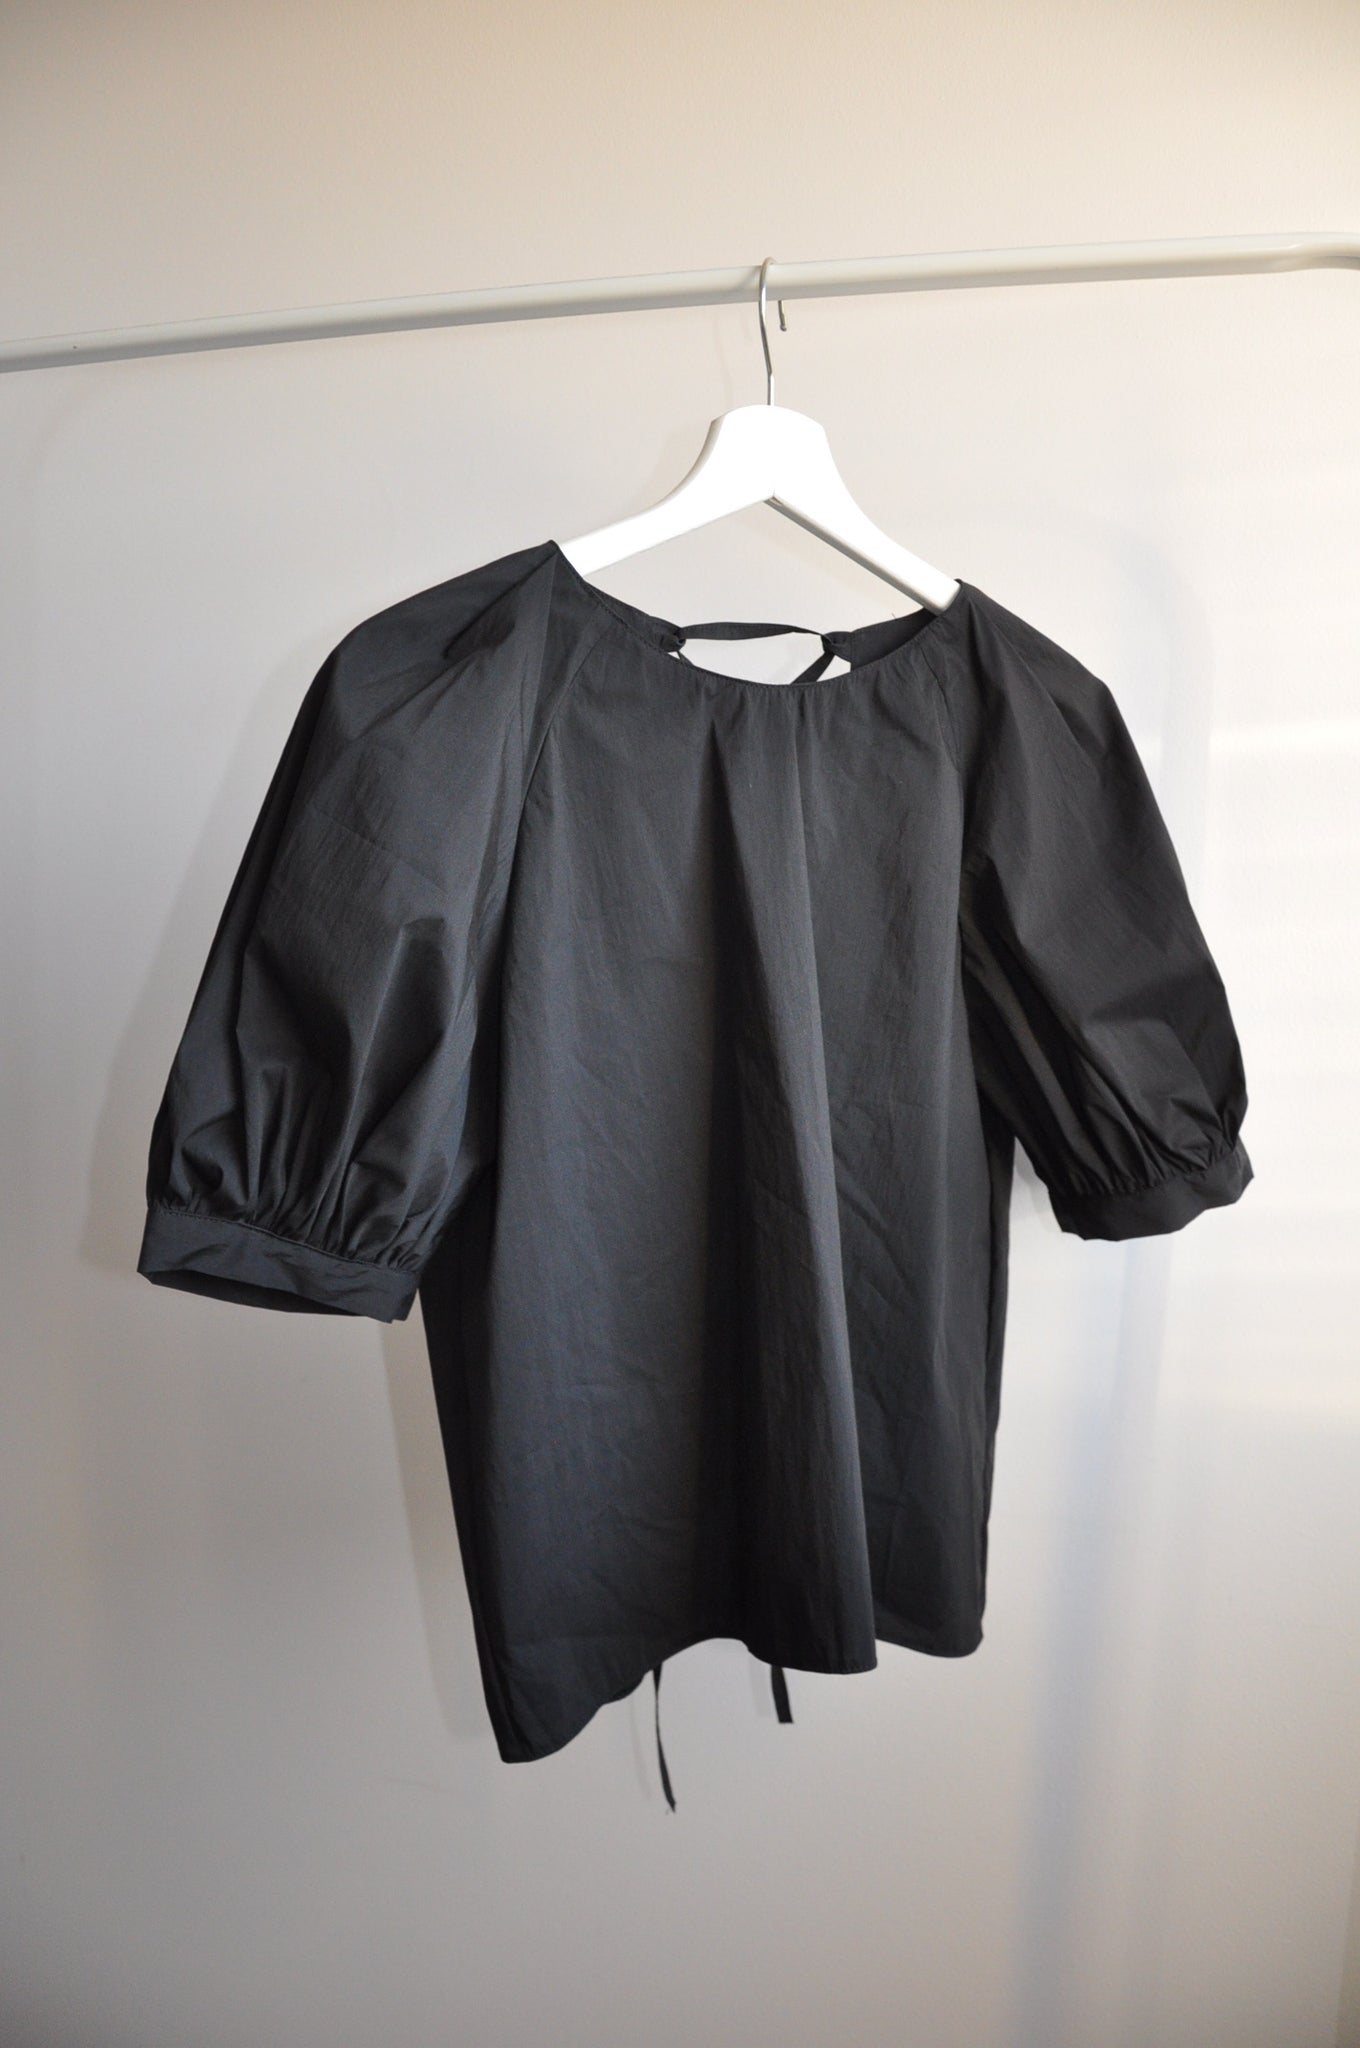 Ruffle blouse black xs-m - Upcycled by Nimfa